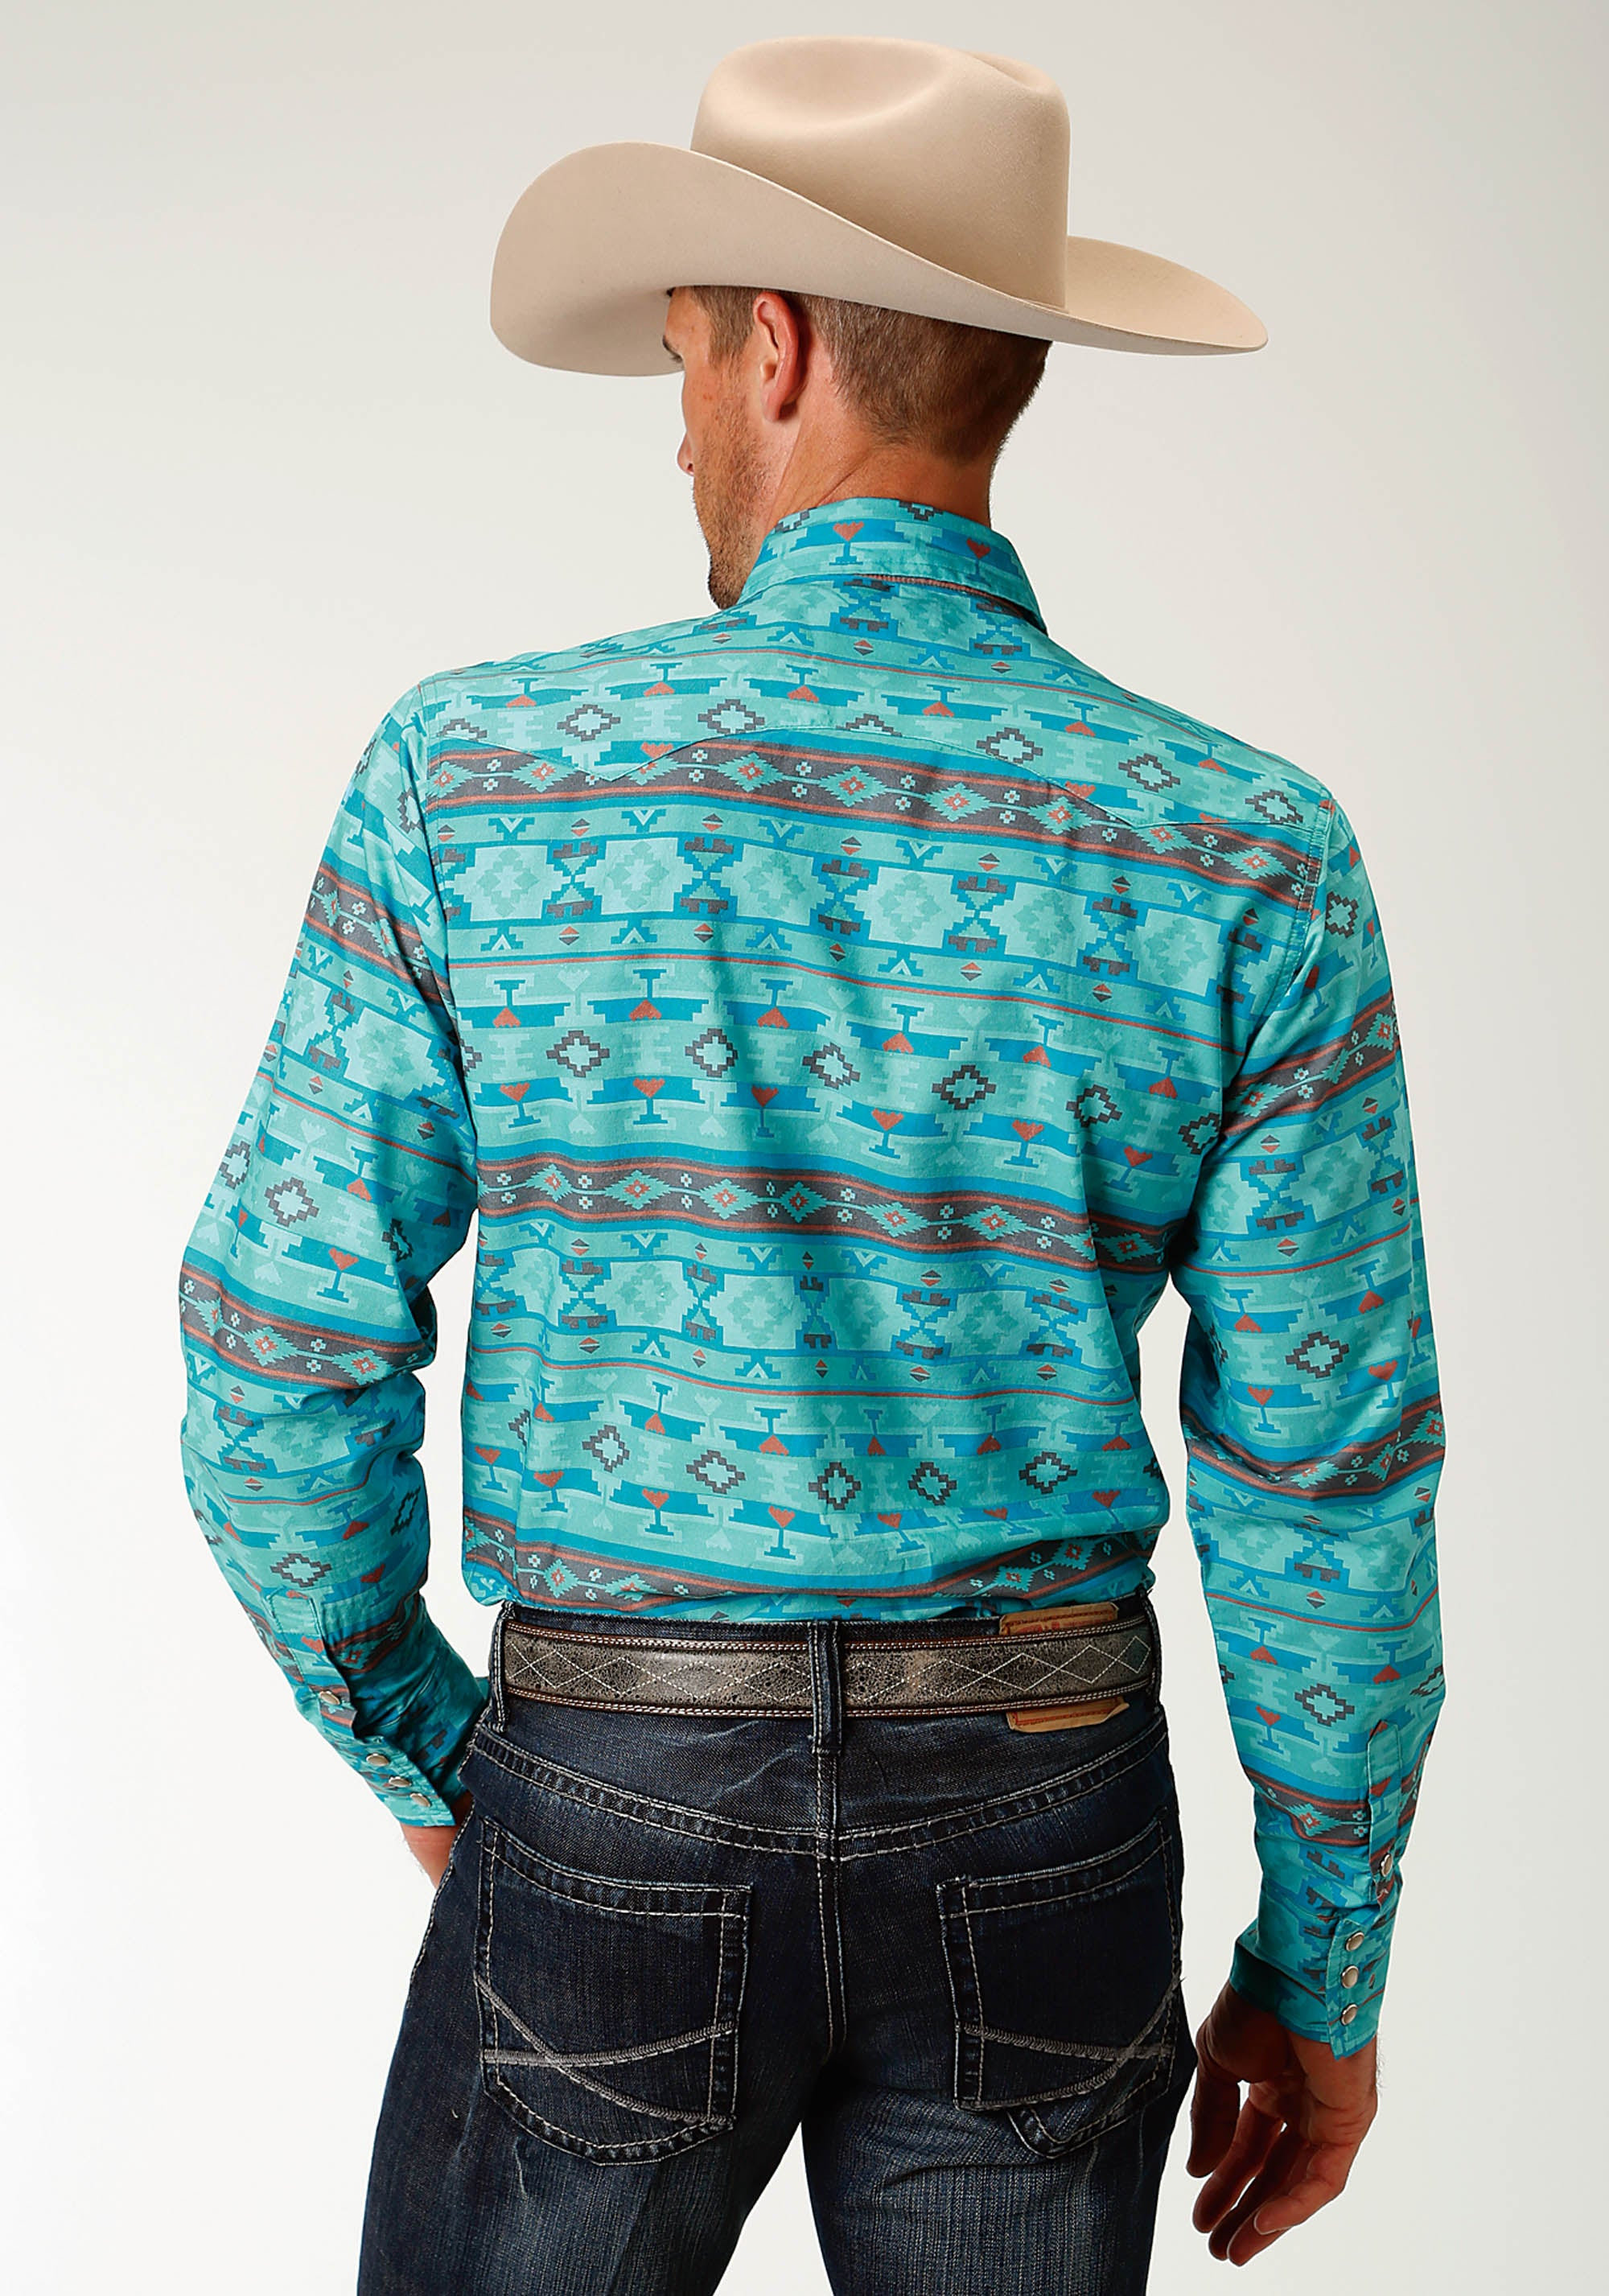 ROPER MENS BLUE 2609 BLUE HORRIZON AZTEC WEST MADE COLLECTION LONG SLEEVE